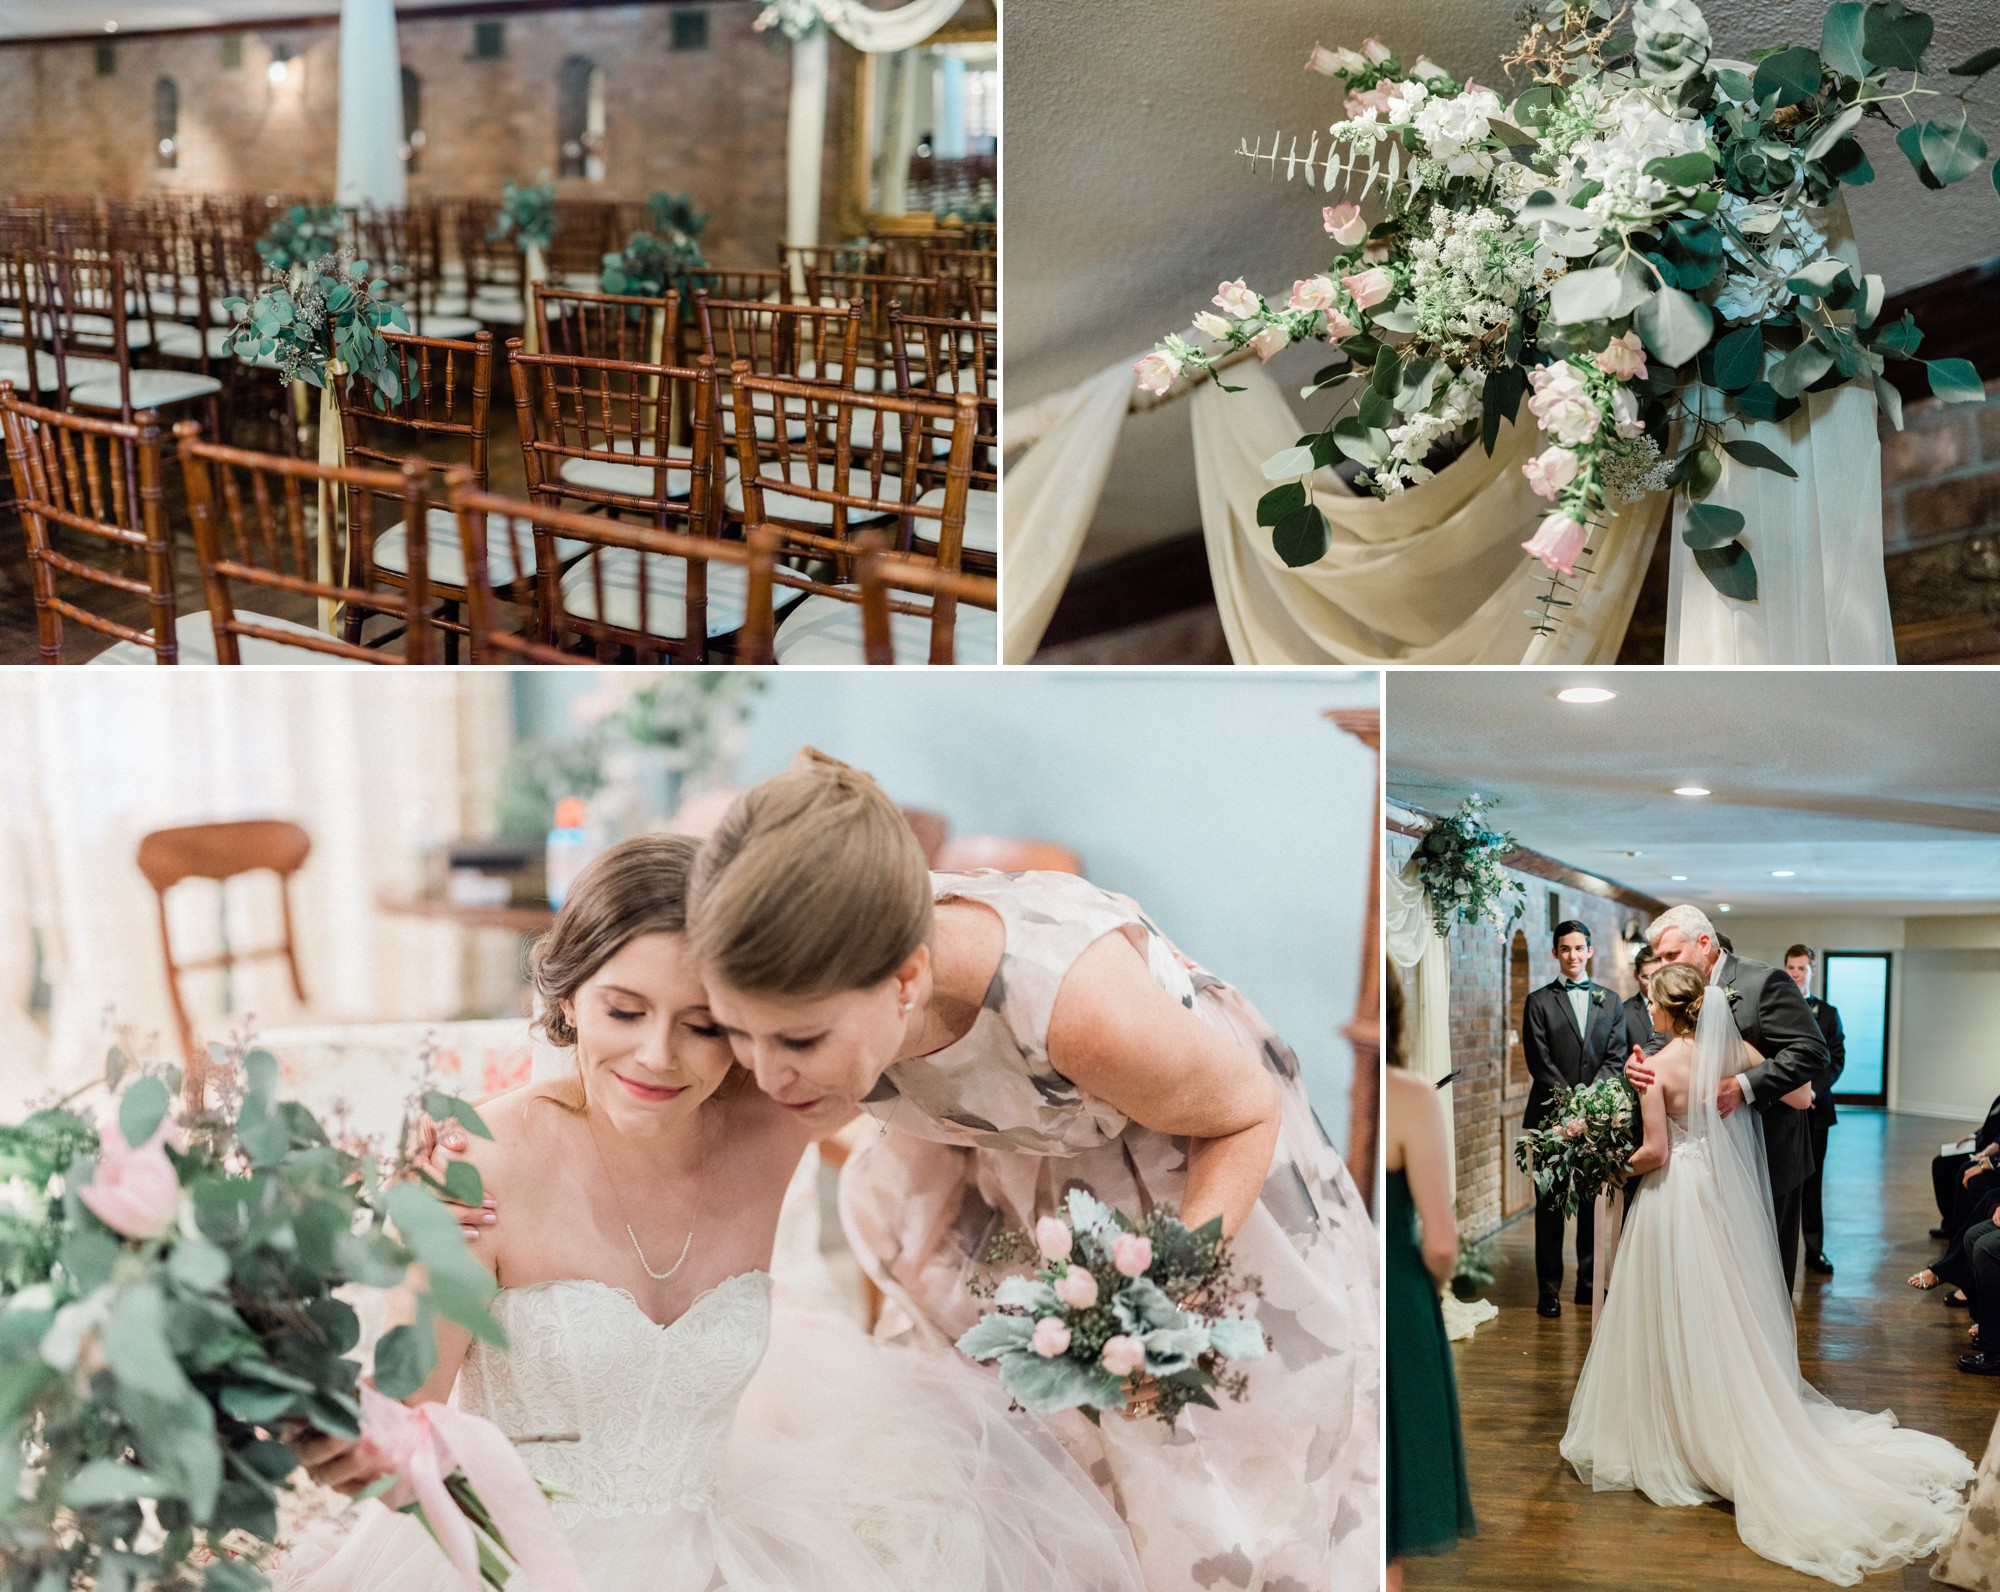 indoor wedding ceremony, poison ivy floral design, spring wedding photo, the gallery, houston, texas, dreamy elk photography and design